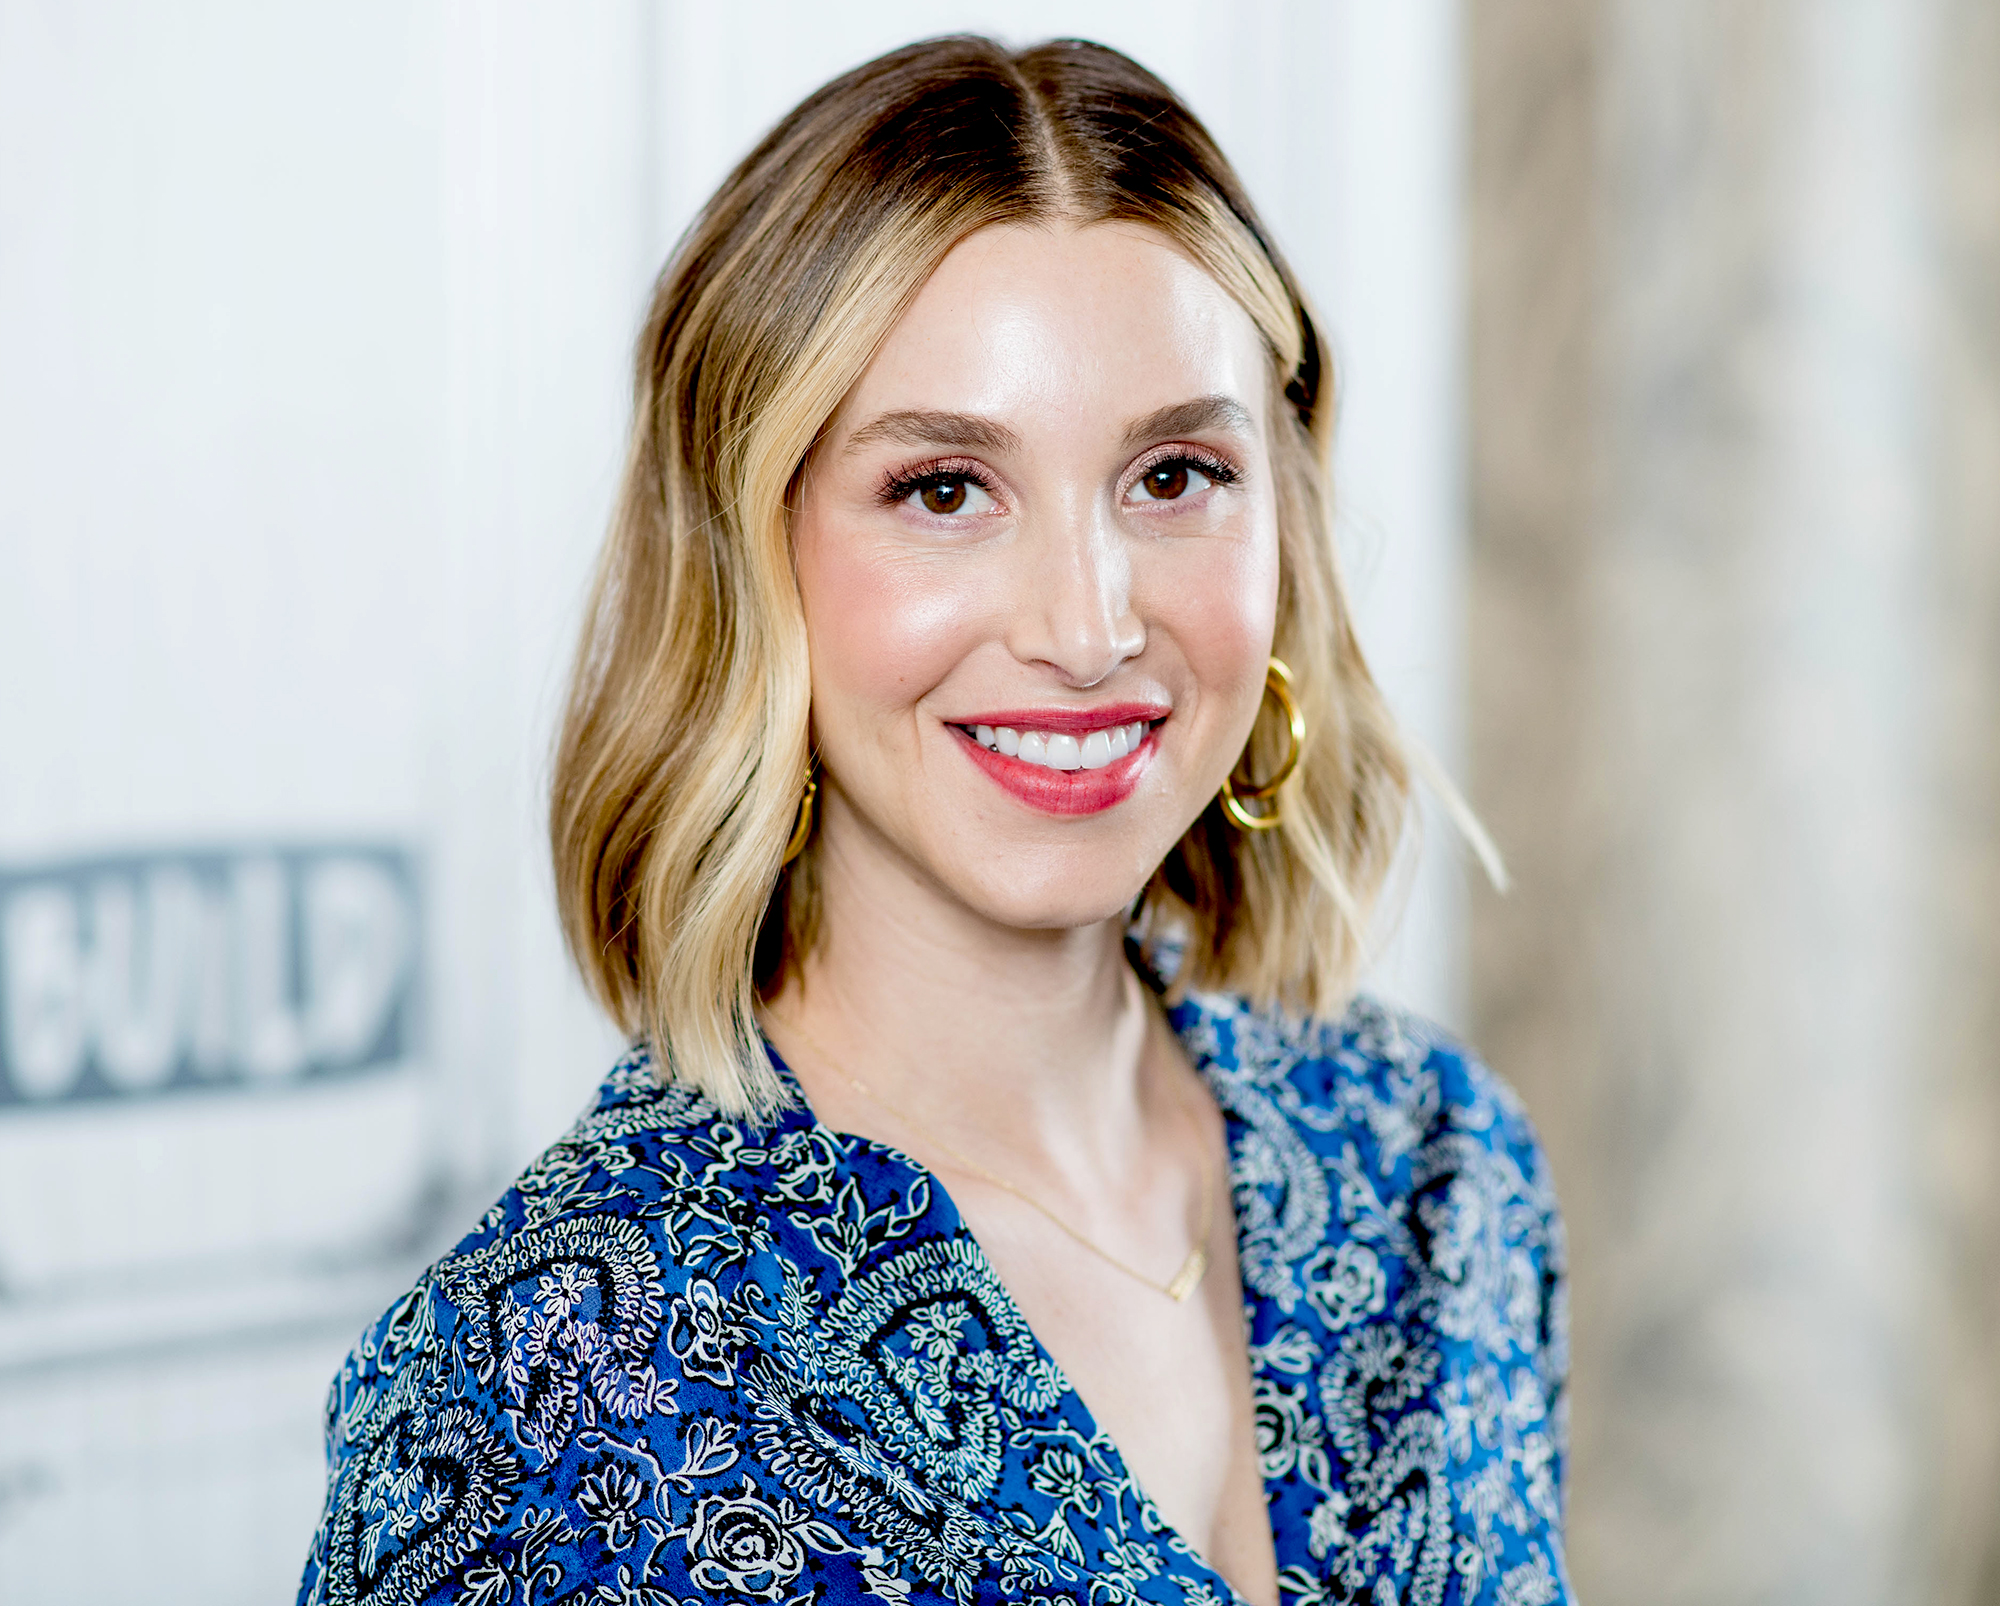 Whitney-Port-smoothie-recipe - To energize herself after a workout, Whitney Port likes to whip up a simple drink . She mixes 1 teaspoon of cacao nibs with 3 pitted dates, ¼ cup almonds and 1 banana with 1 cup of dairy-free Lactaid.